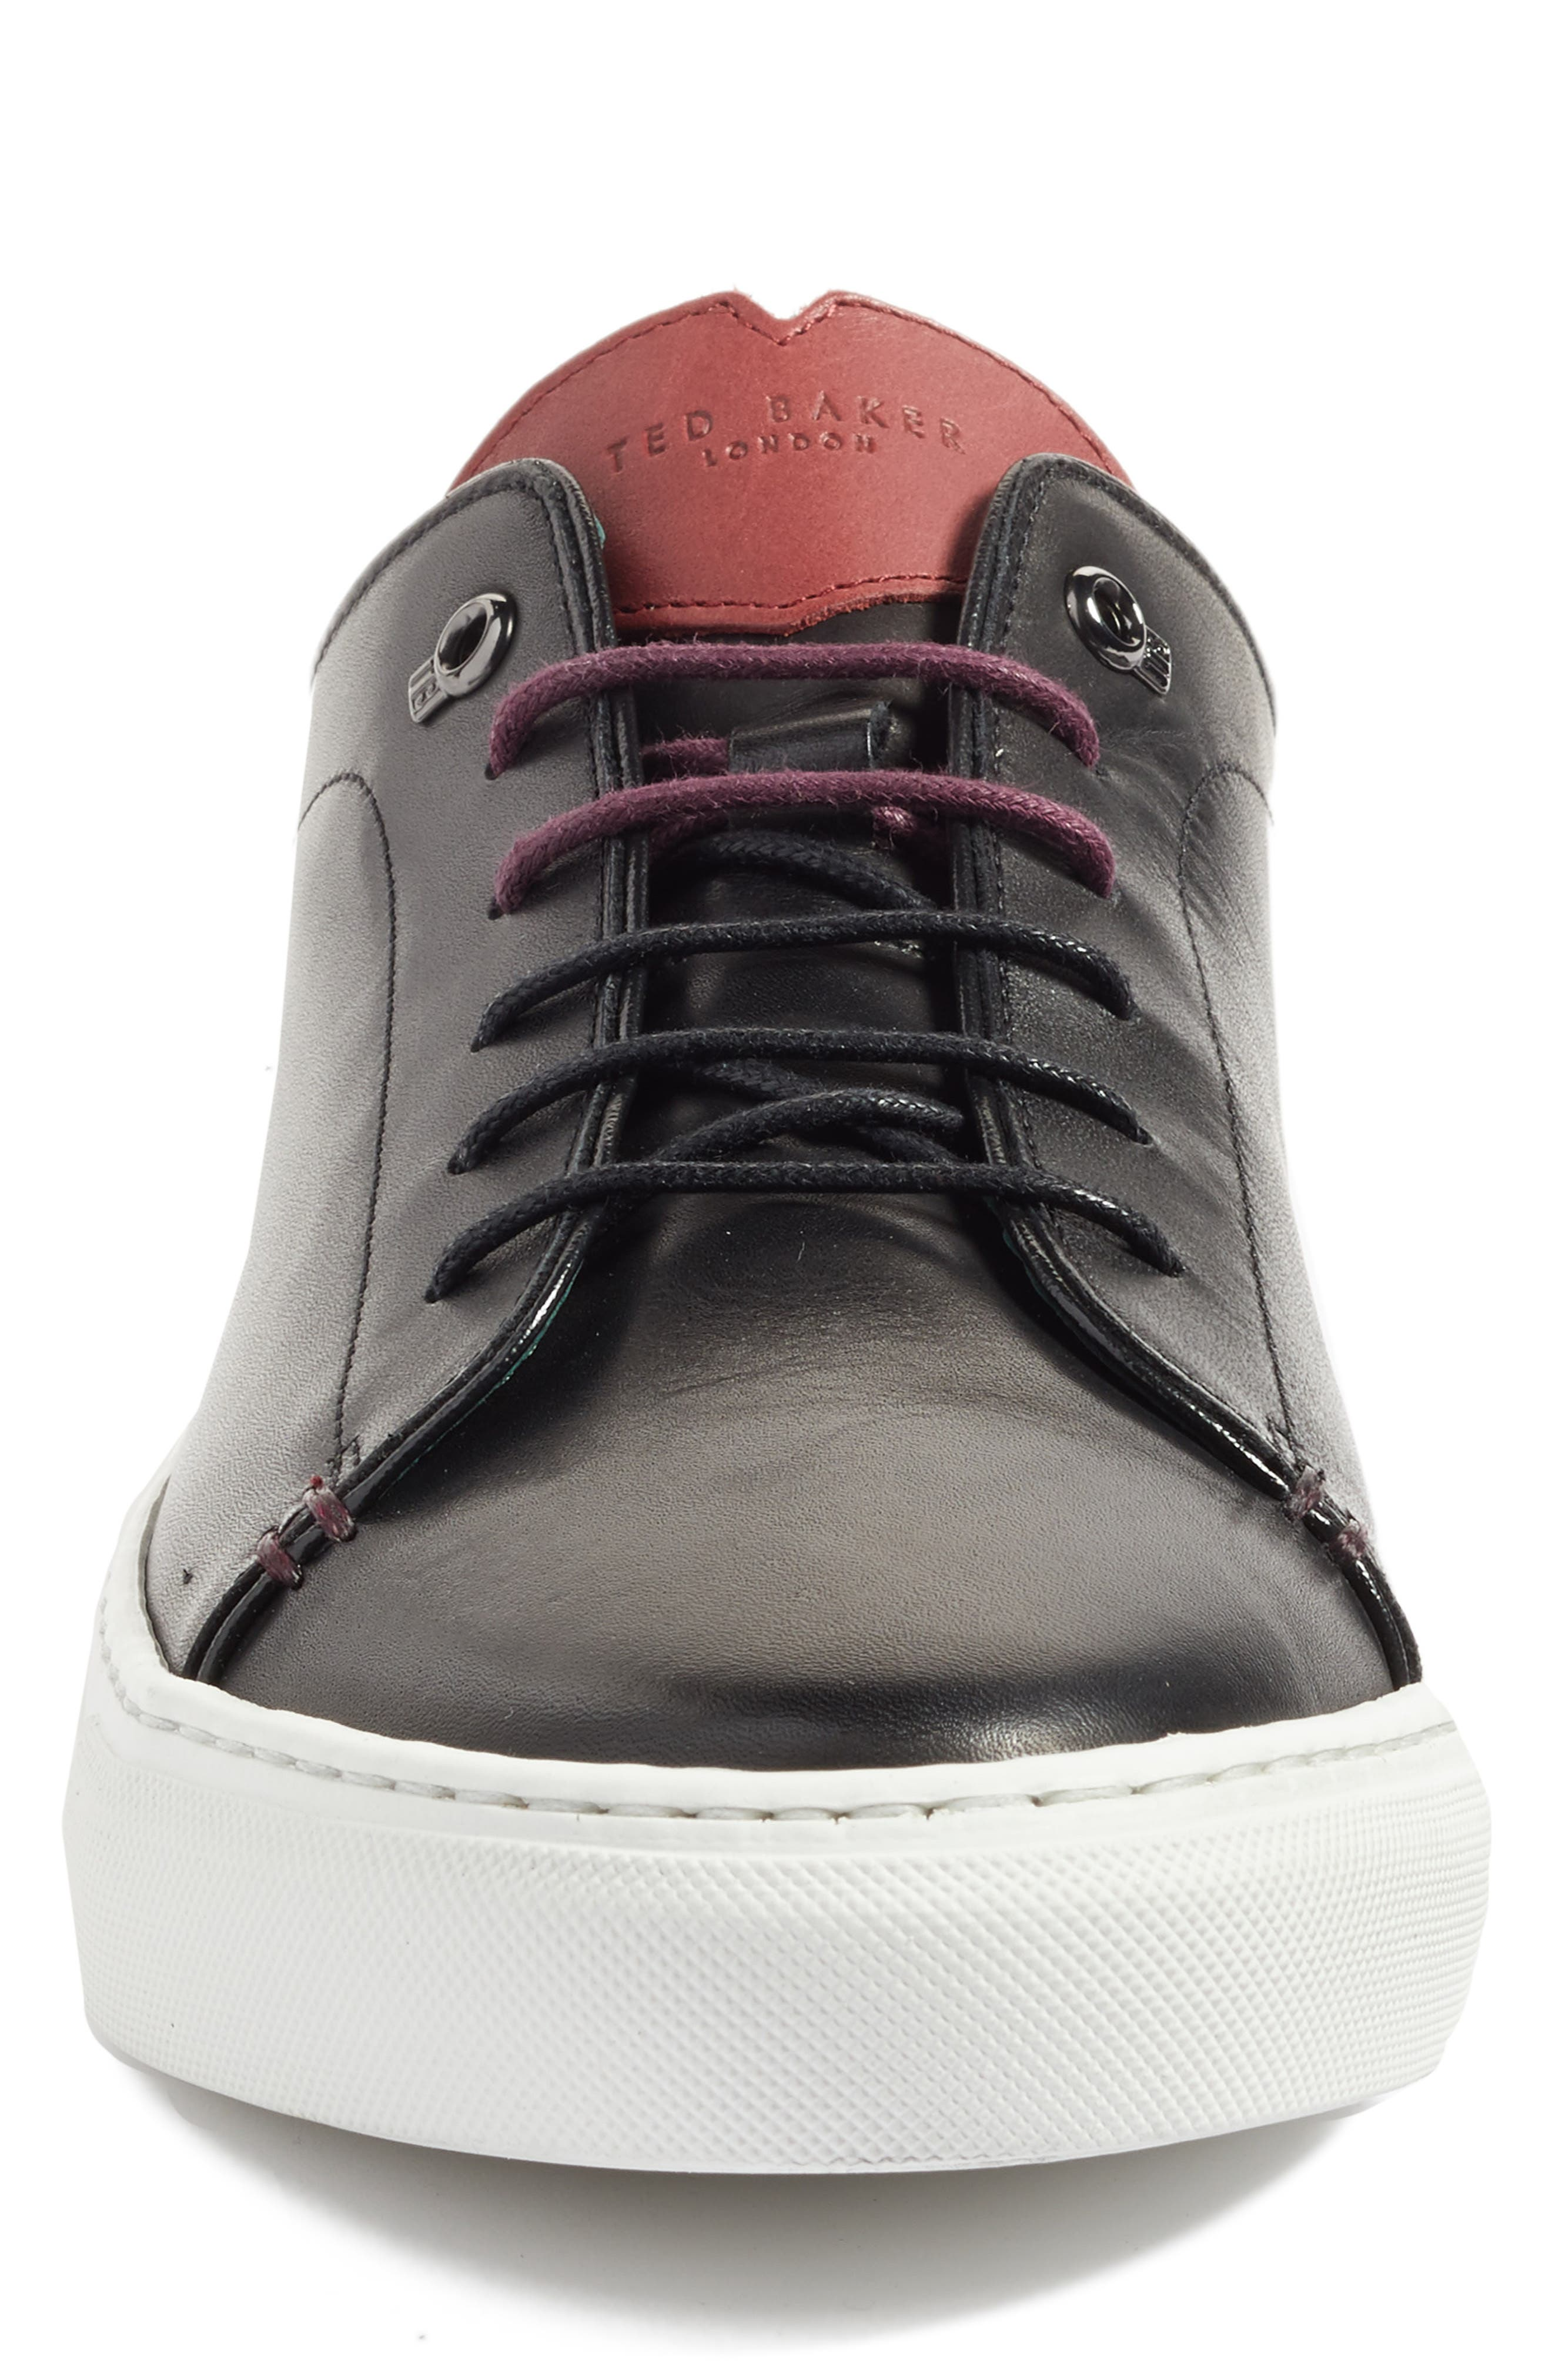 TED BAKER LONDON, 'Kiing Classic' Sneaker, Alternate thumbnail 2, color, 001